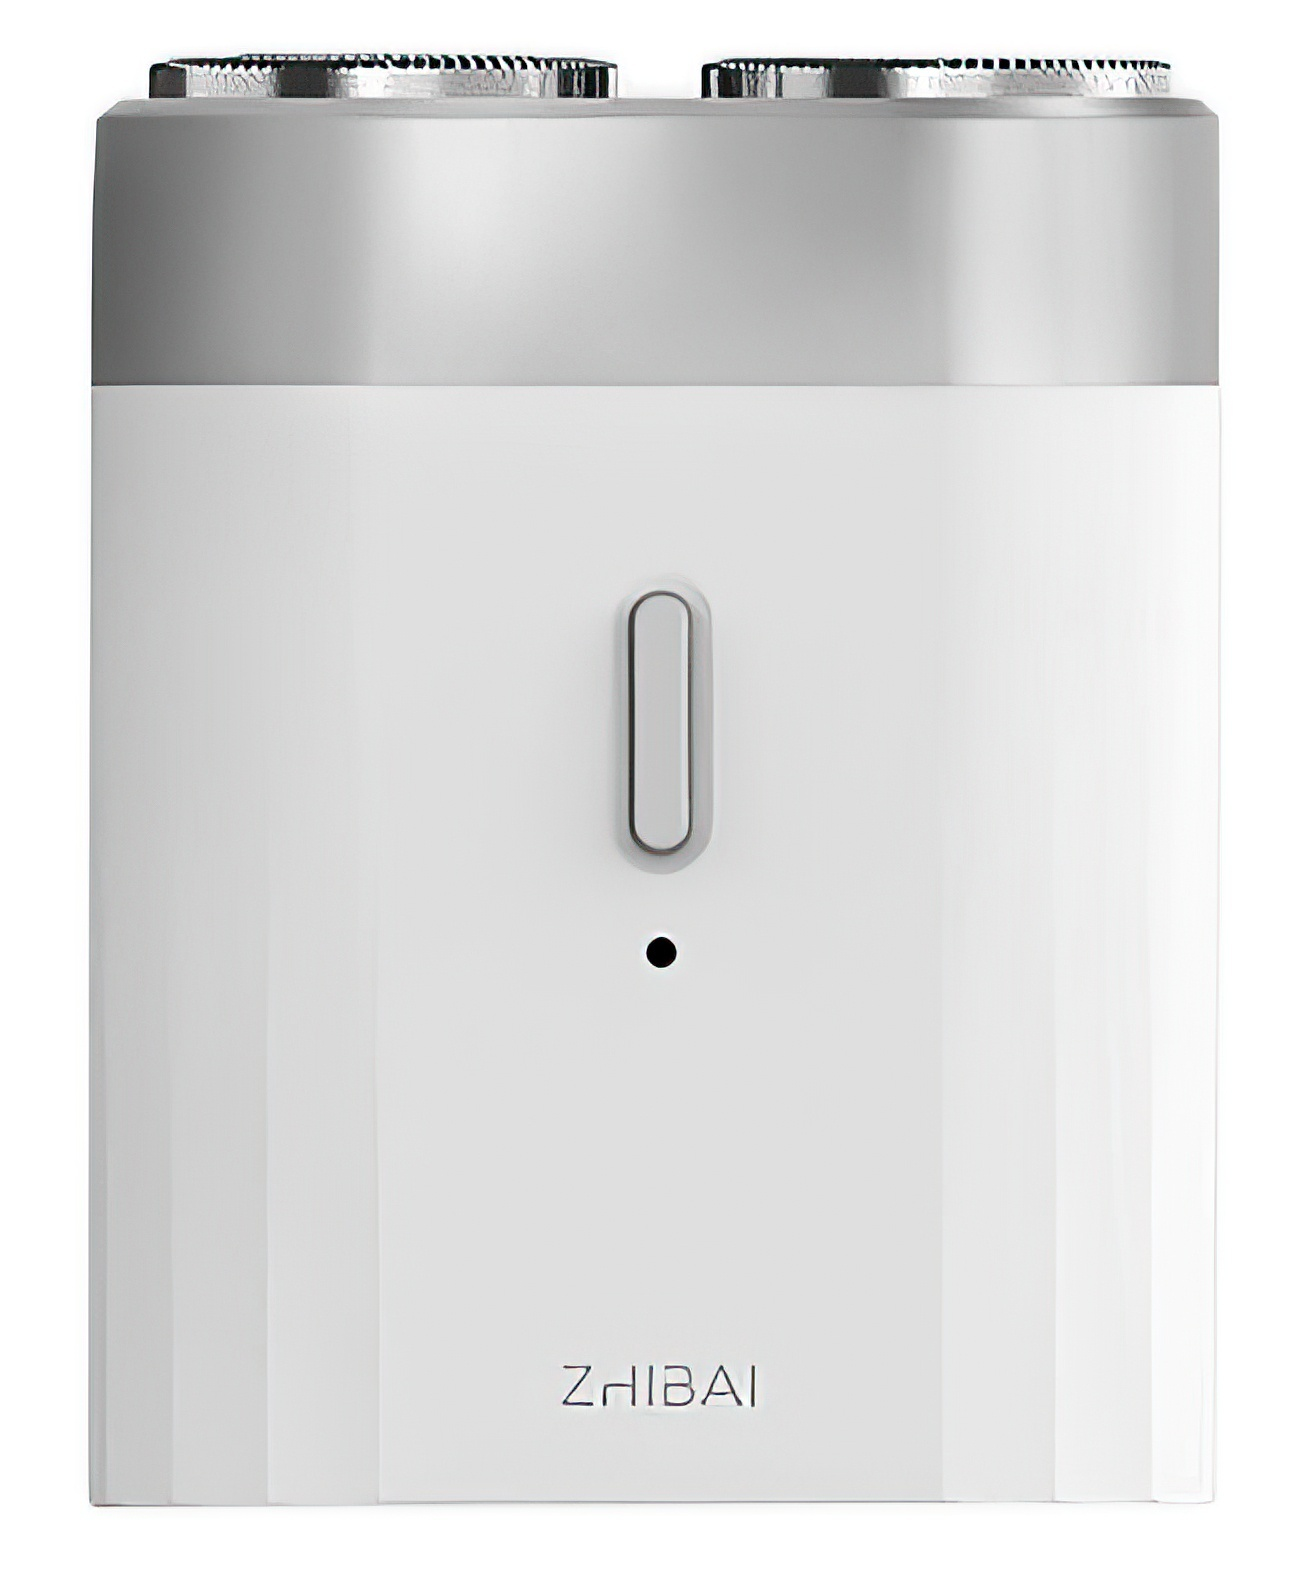 Xiaomi Zhibai Mini Washed Shaver White